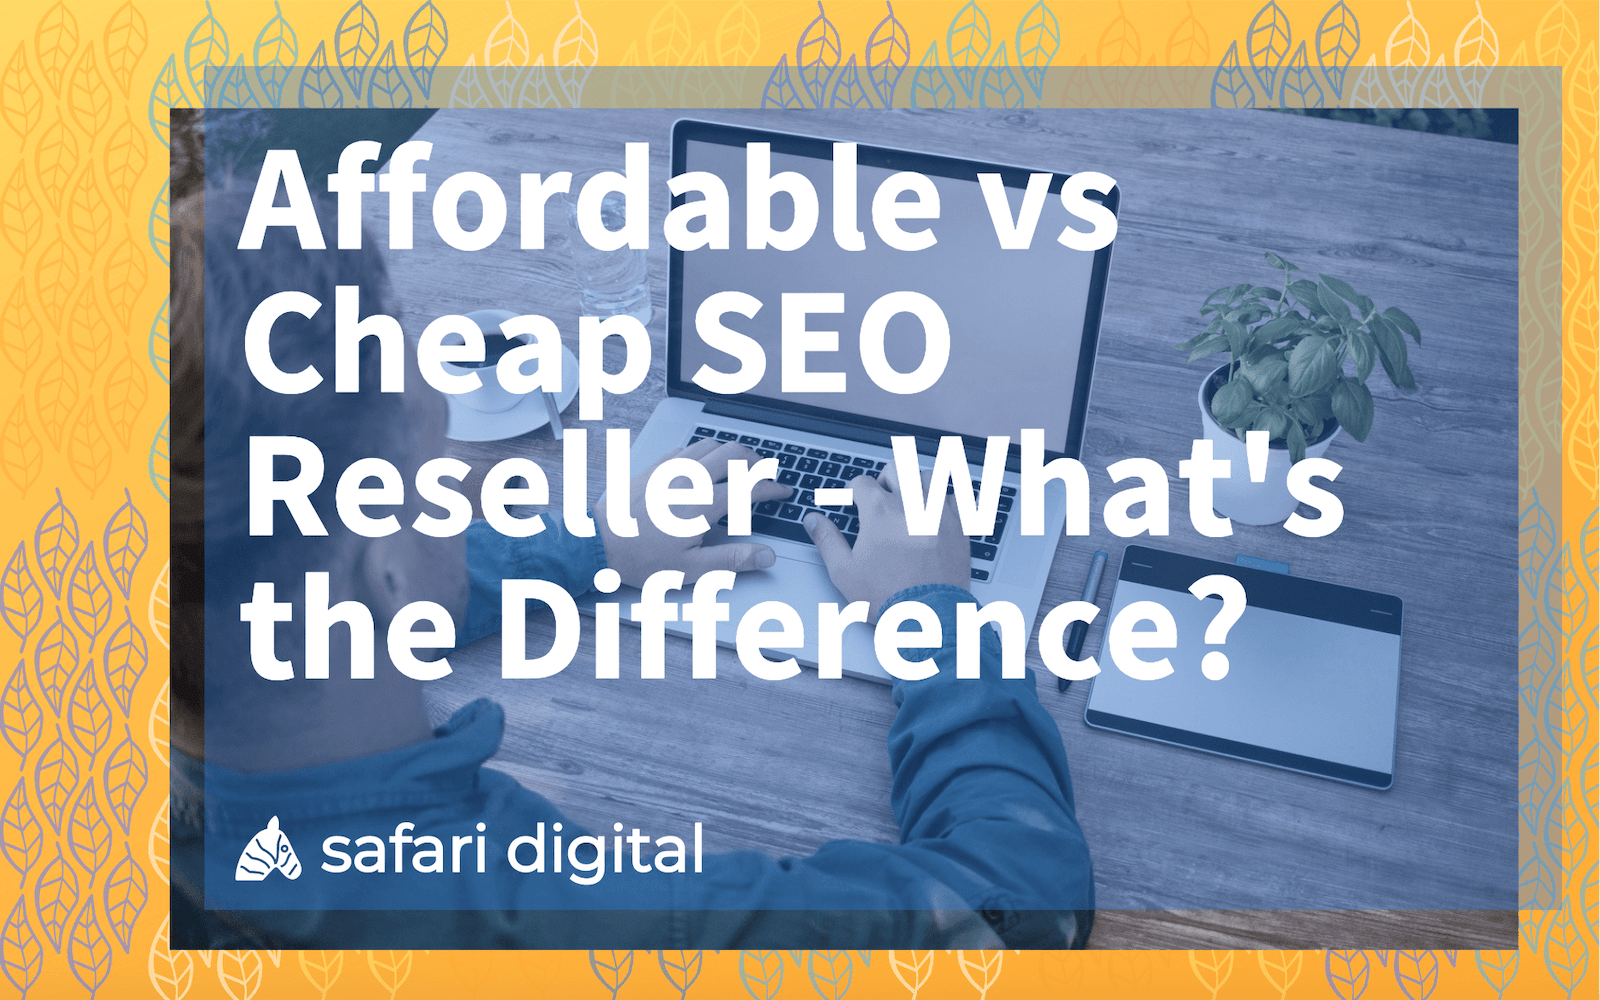 Cheap SEO reseller Australia vs. Affordable SEO reseller Australia - large cover image